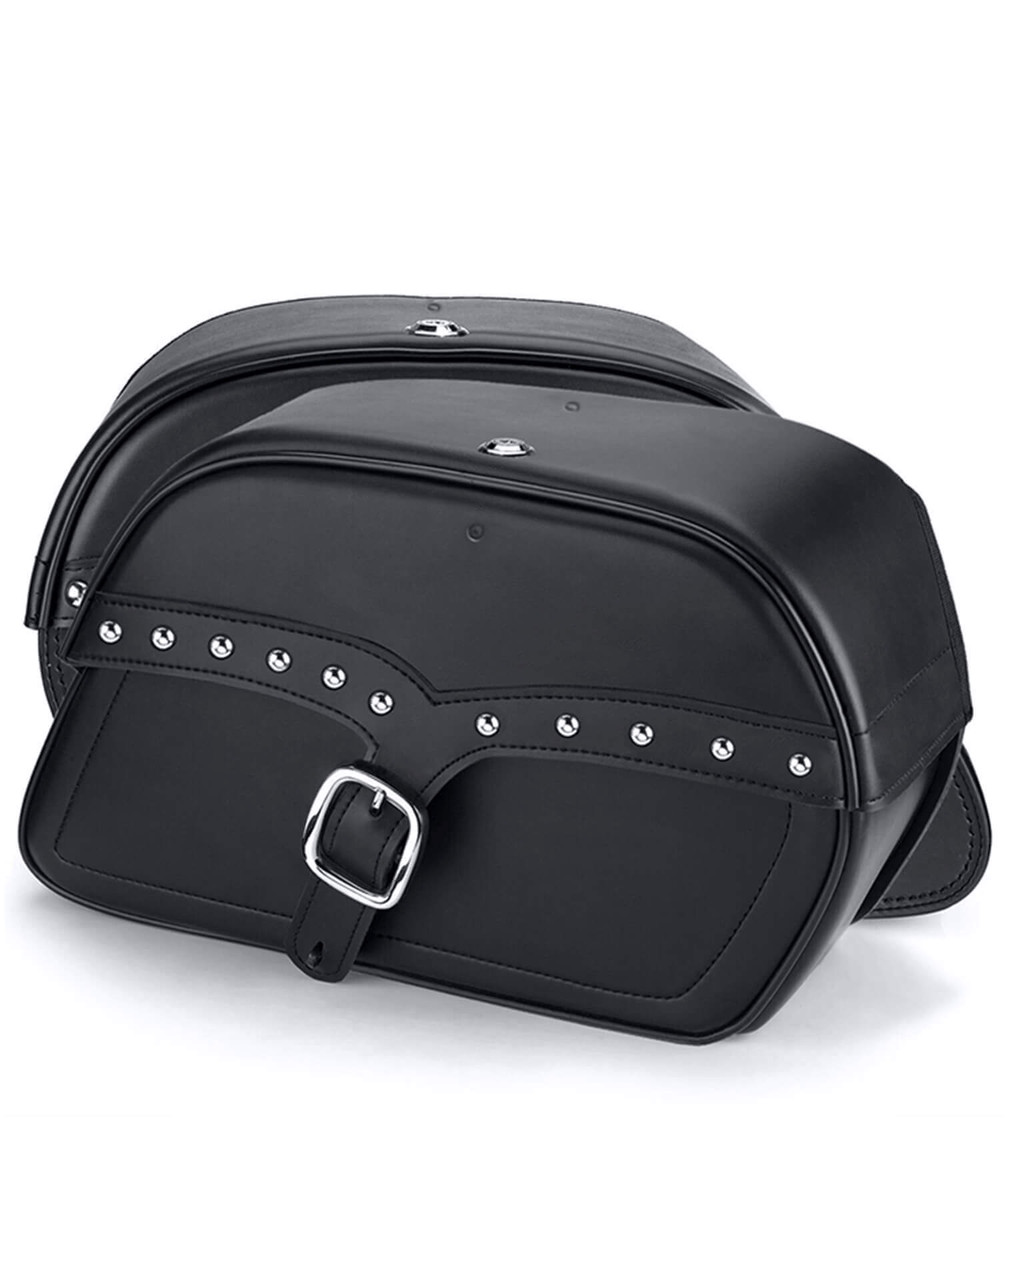 Victory Octane Charger Single Strap Studded Medium Motorcycle Saddlebags Both Bags View